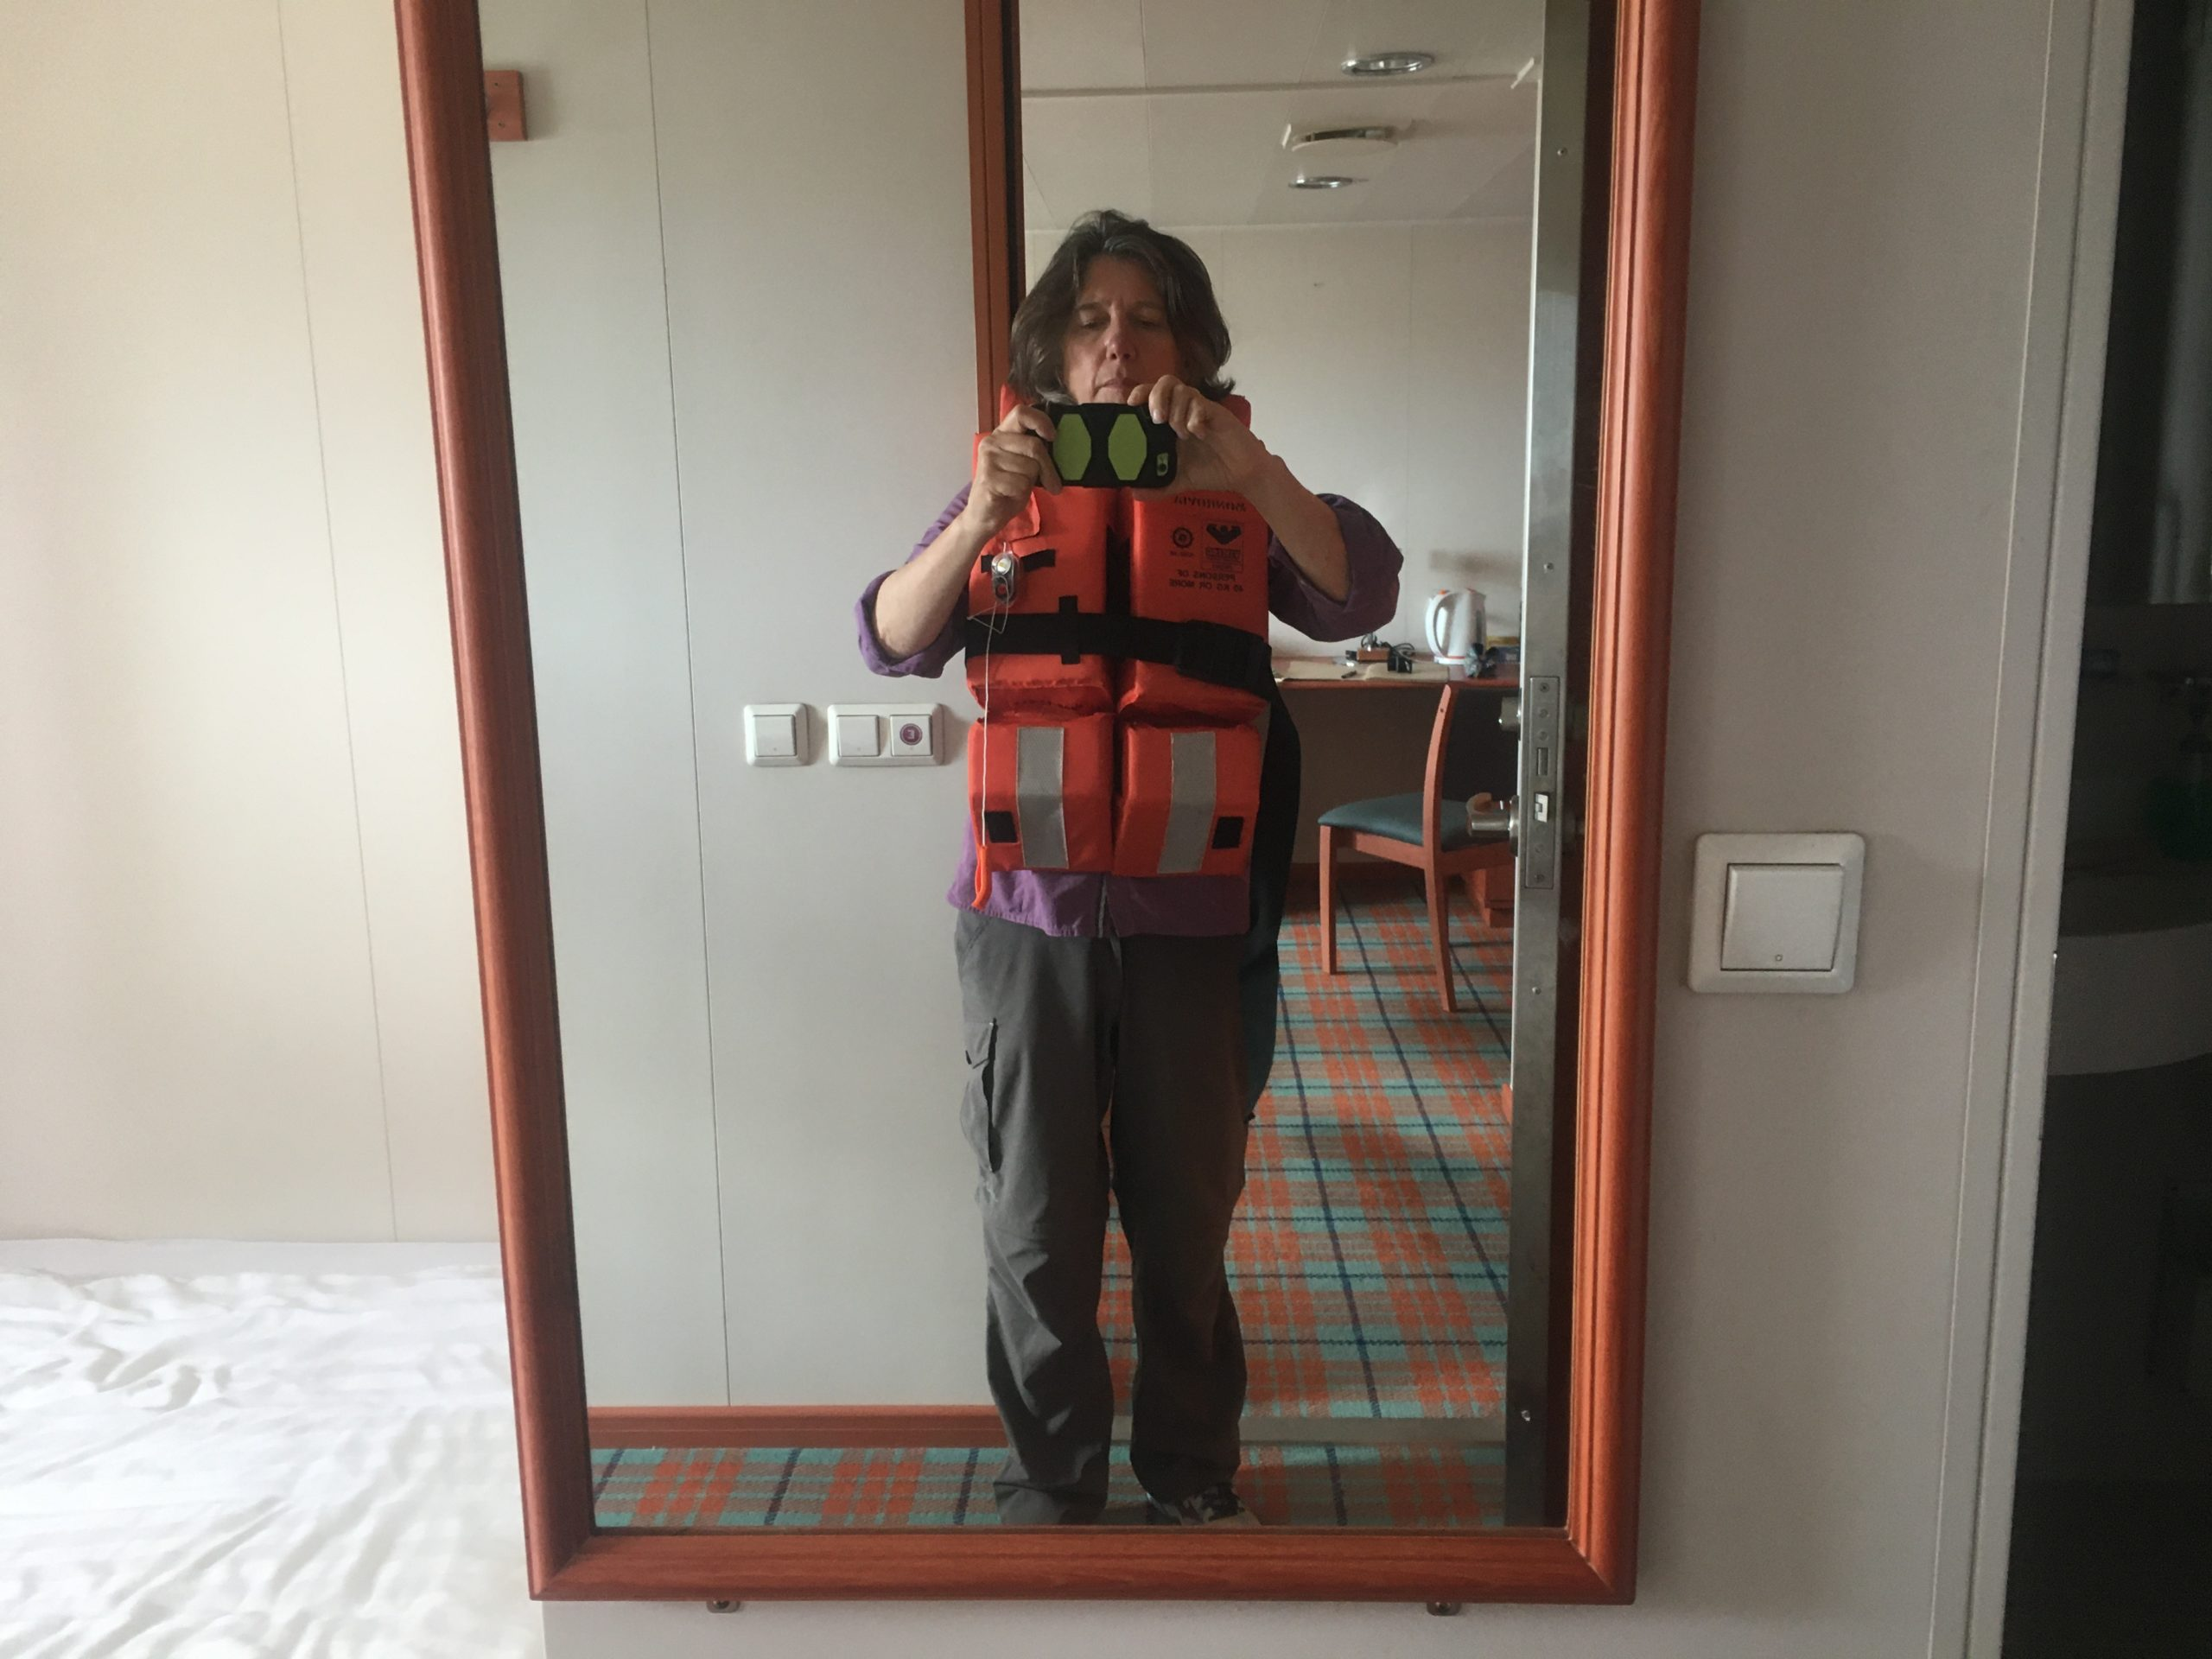 Life jacket private practice